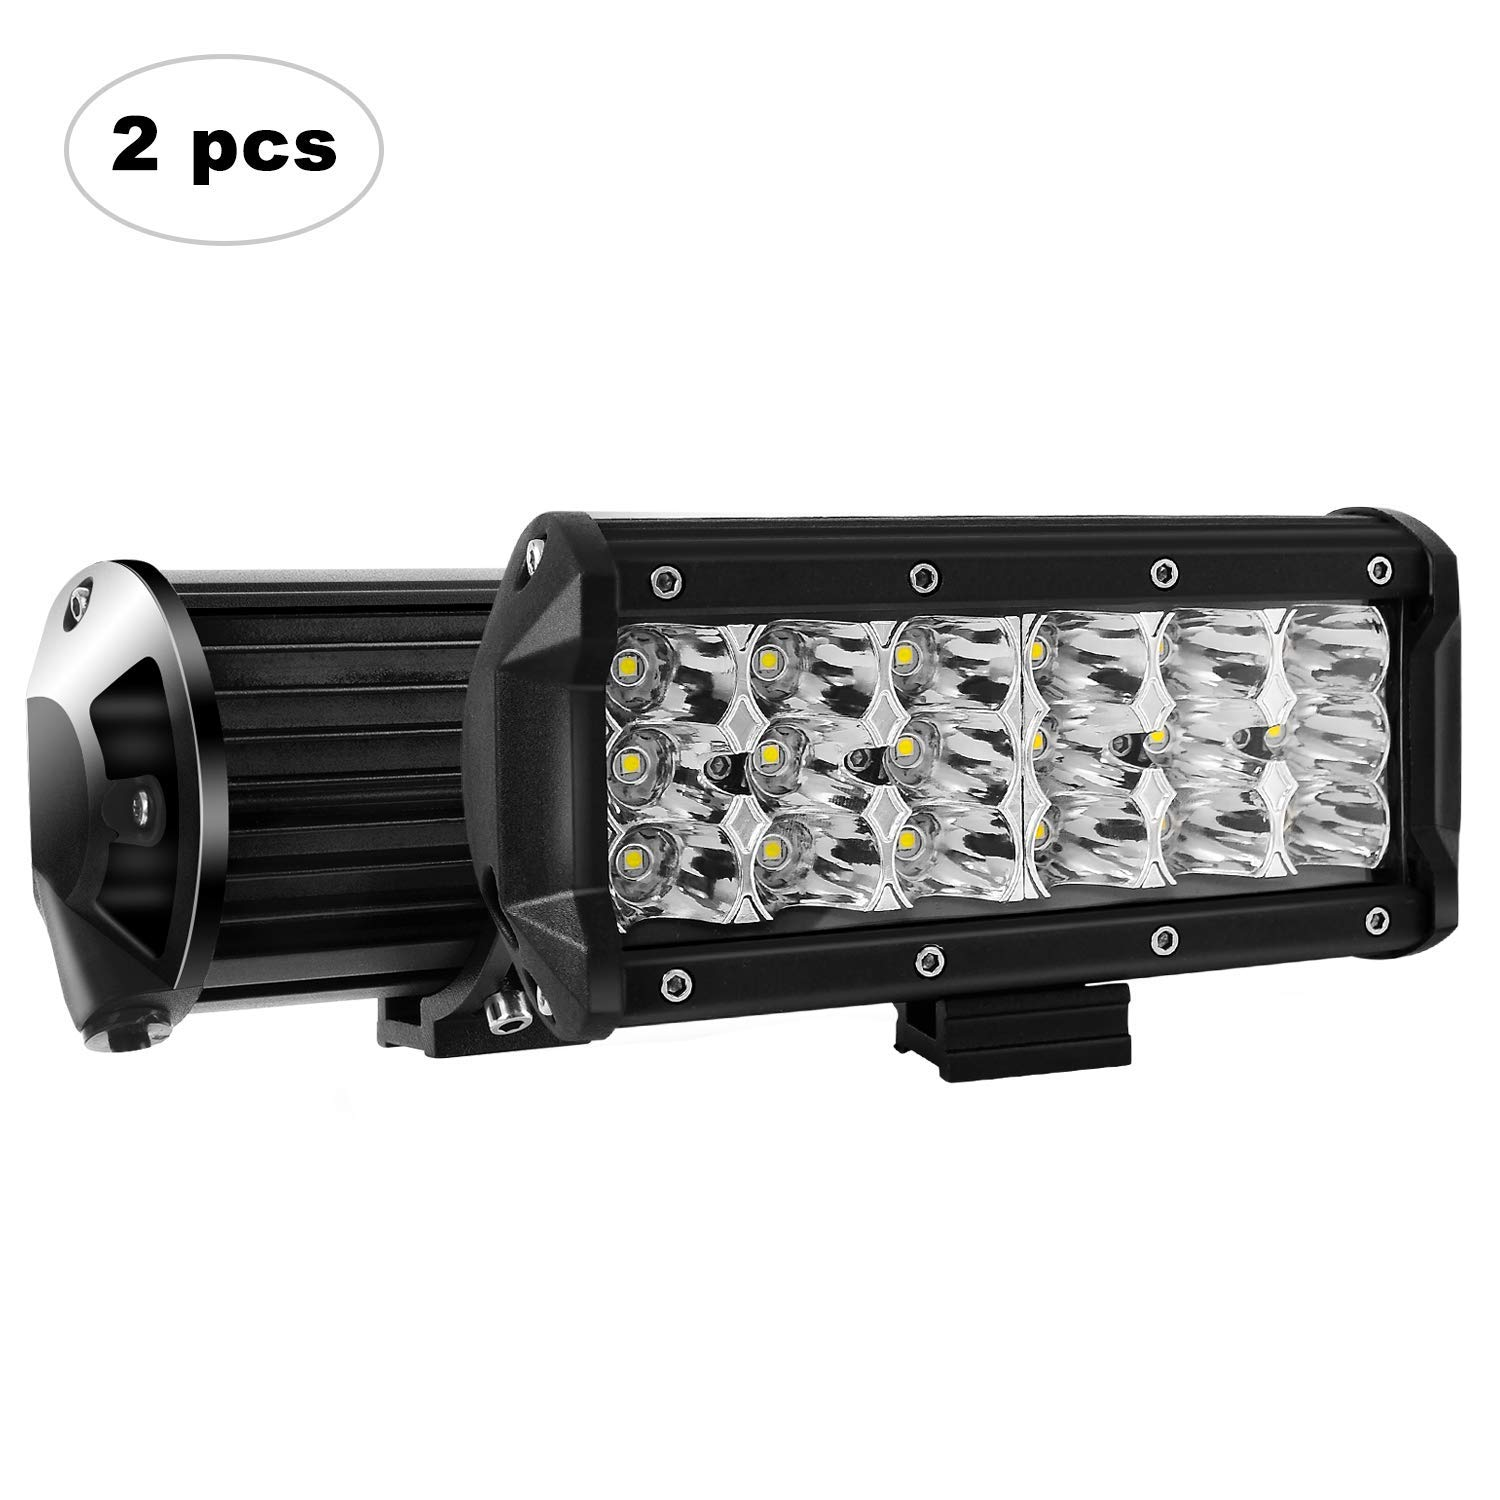 BEEYEO Led Light Bar 7 Inch 96W Flood Beam Light Triple Row Work Light Offroad Lighting 12V//24V for Jeep Trucks ATV Buggy UTV SUV Boat IP68 Waterproof Pack of 2 pcs /…